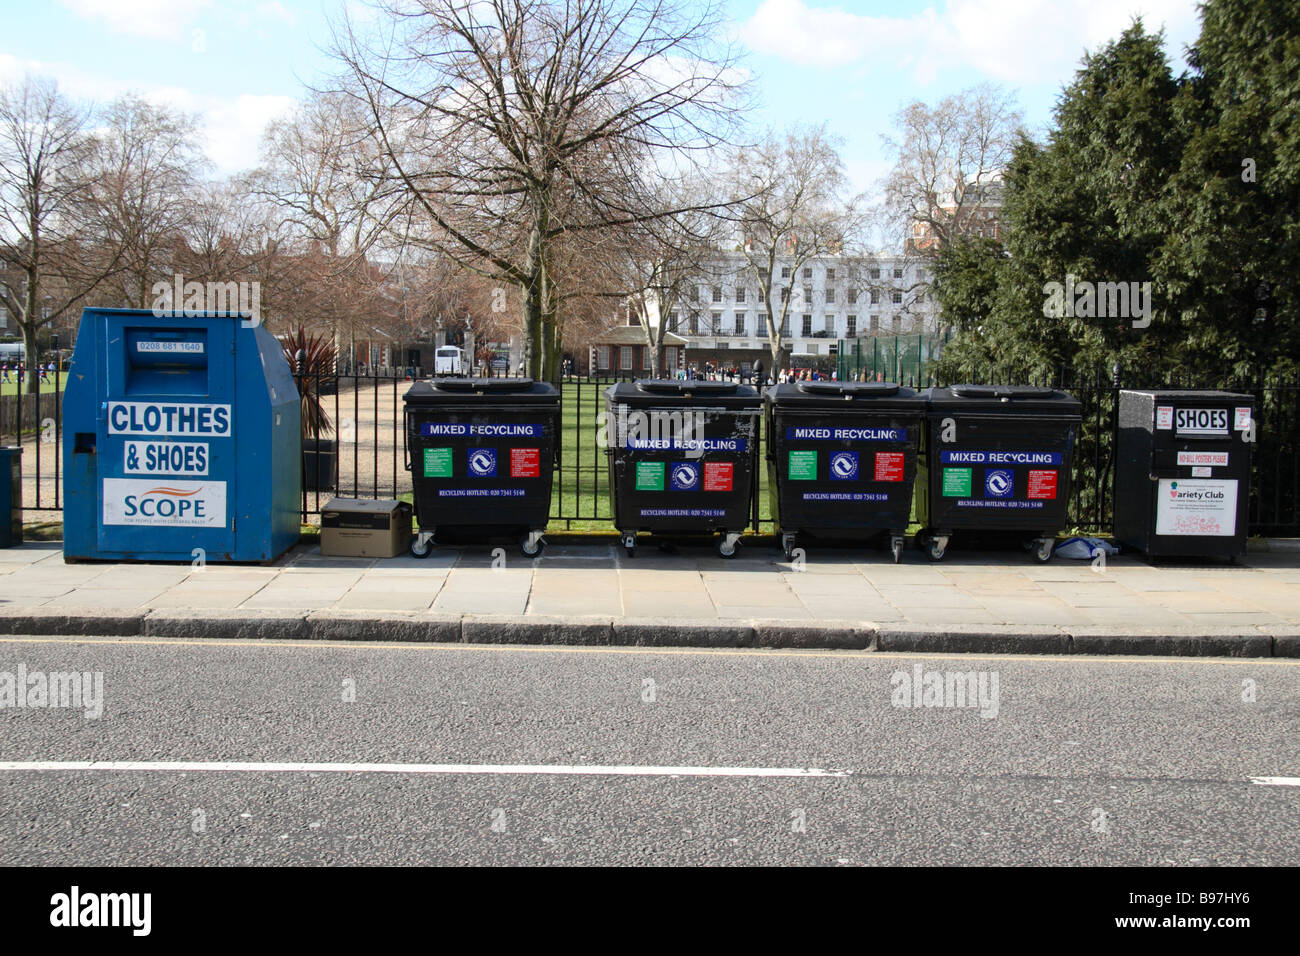 A road side recycling centre including bottle banks and containers for old clothes and shoes in Chelsea, London. - Stock Image